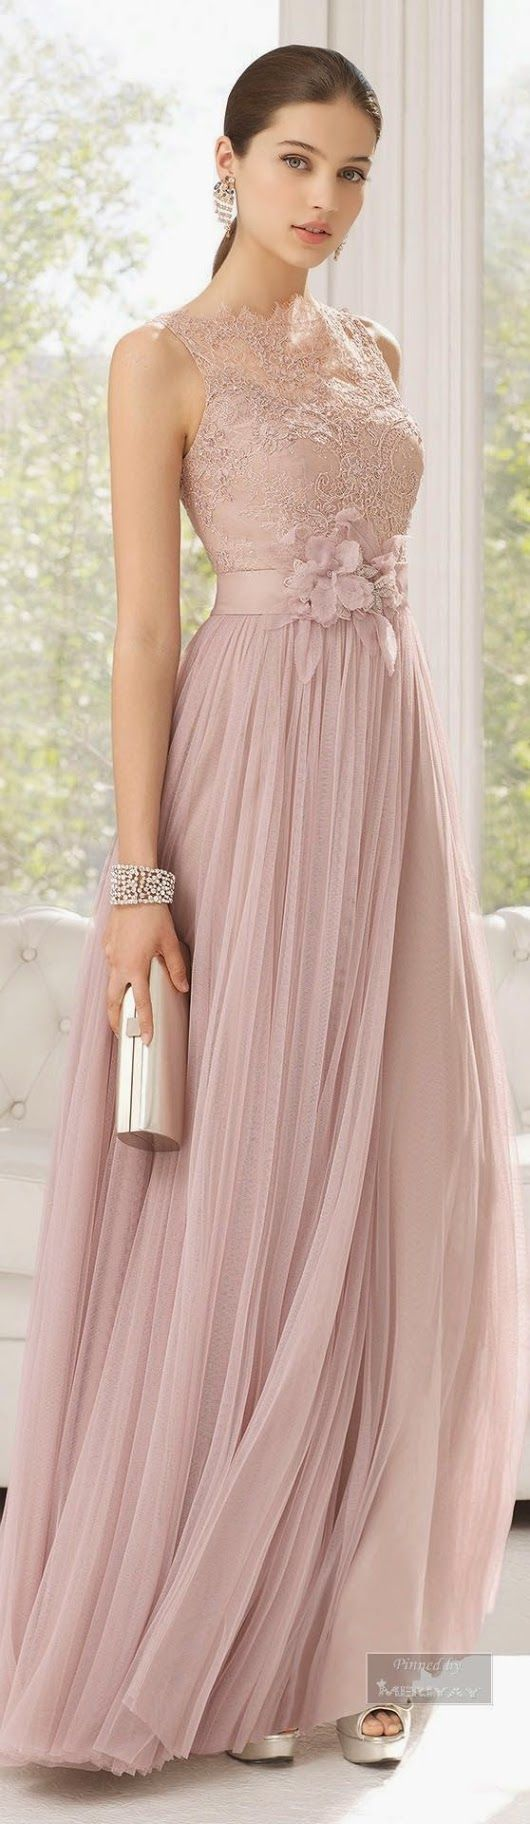 Pin de Abigail Santos en Wedding Gowns & Bridesmaid Dresses ...